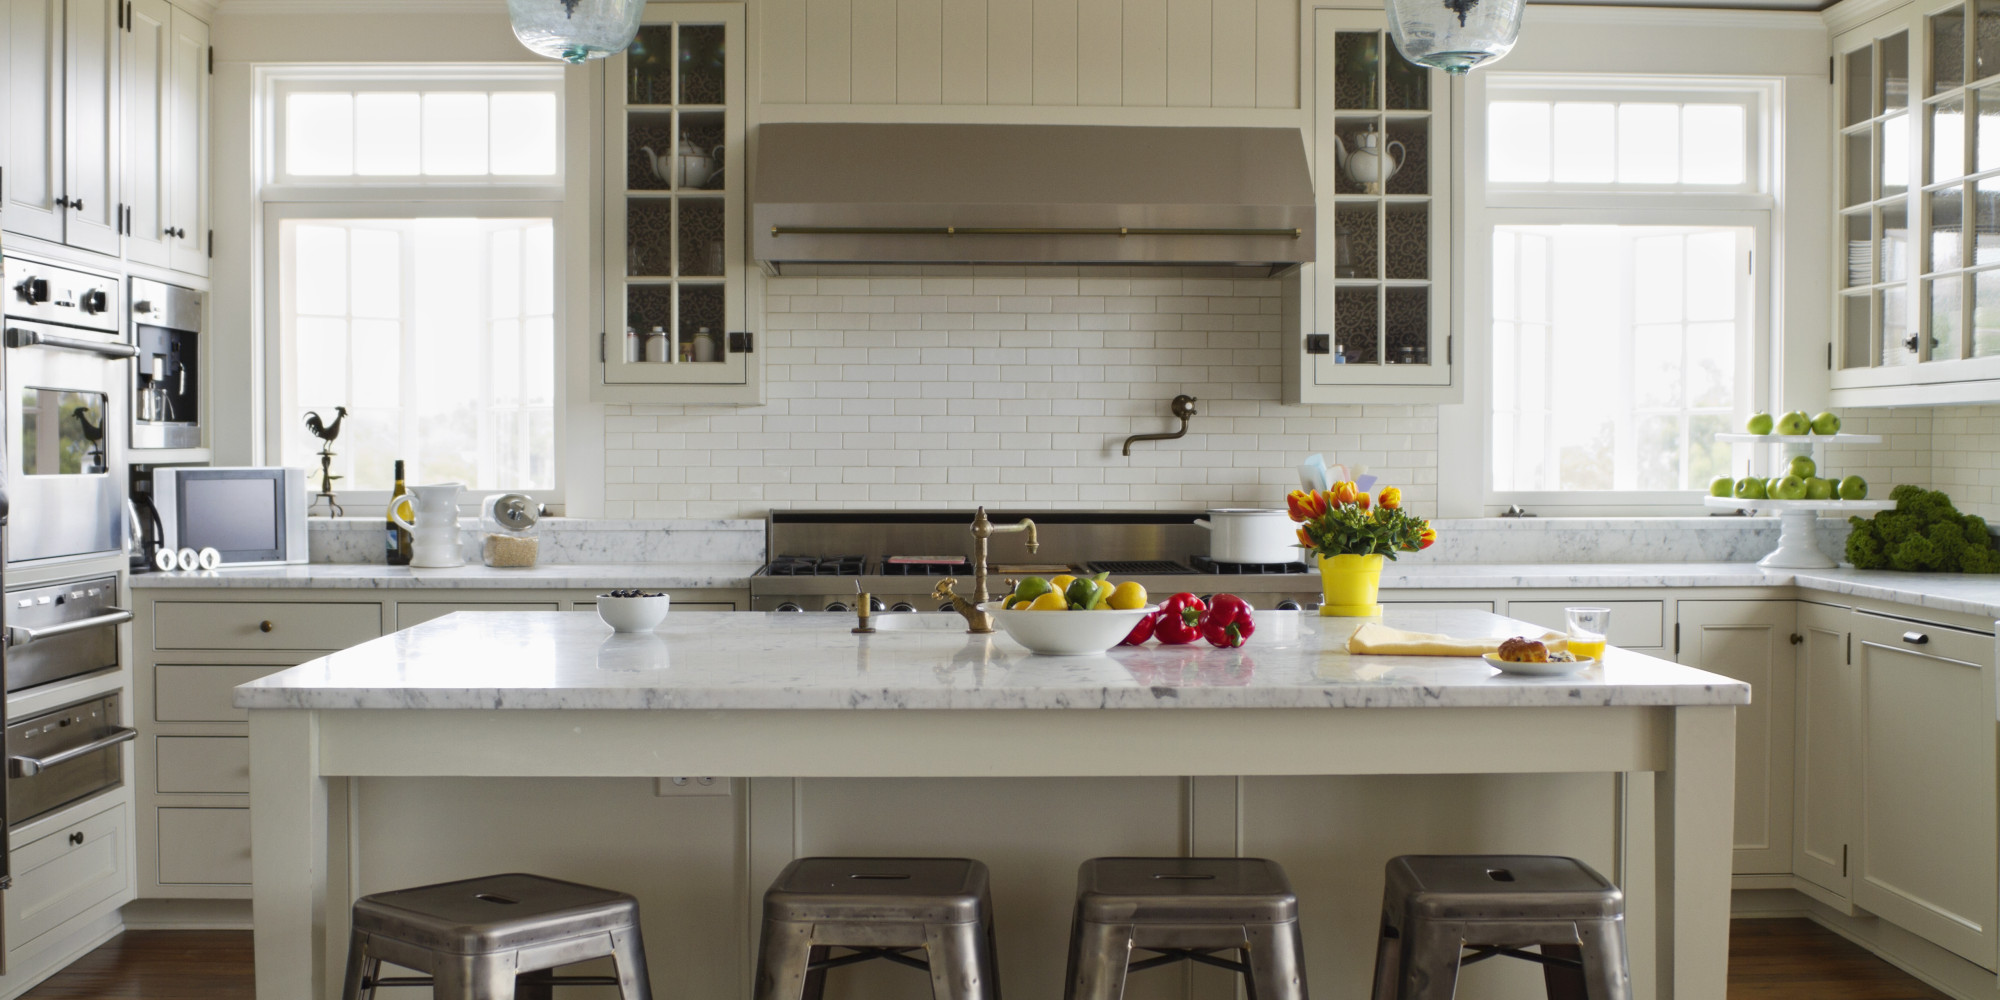 The 3 Biggest Kitchen Trends Of 2014 Might Surprise You (PHOTOS)